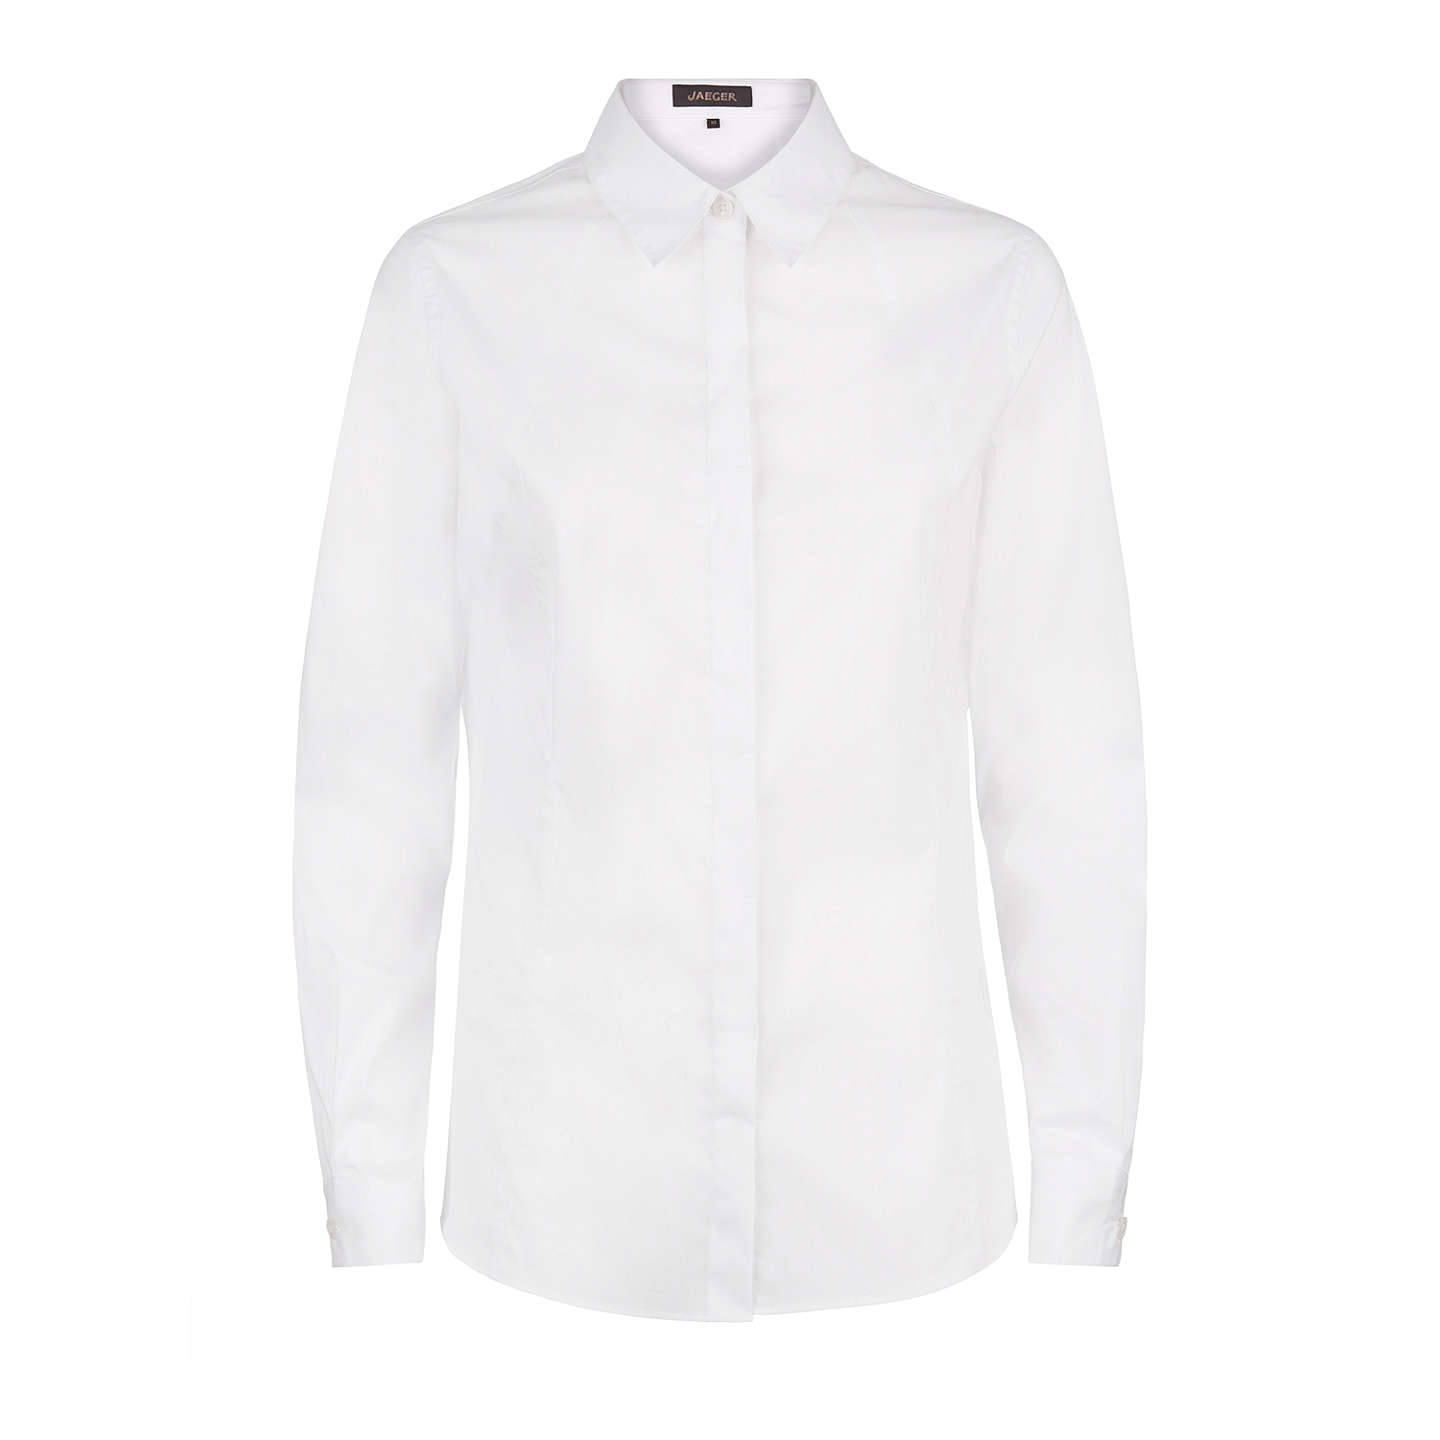 BuyJaeger Slim Fit Classic Long Sleeve Shirt, White, 10 Online at johnlewis.com